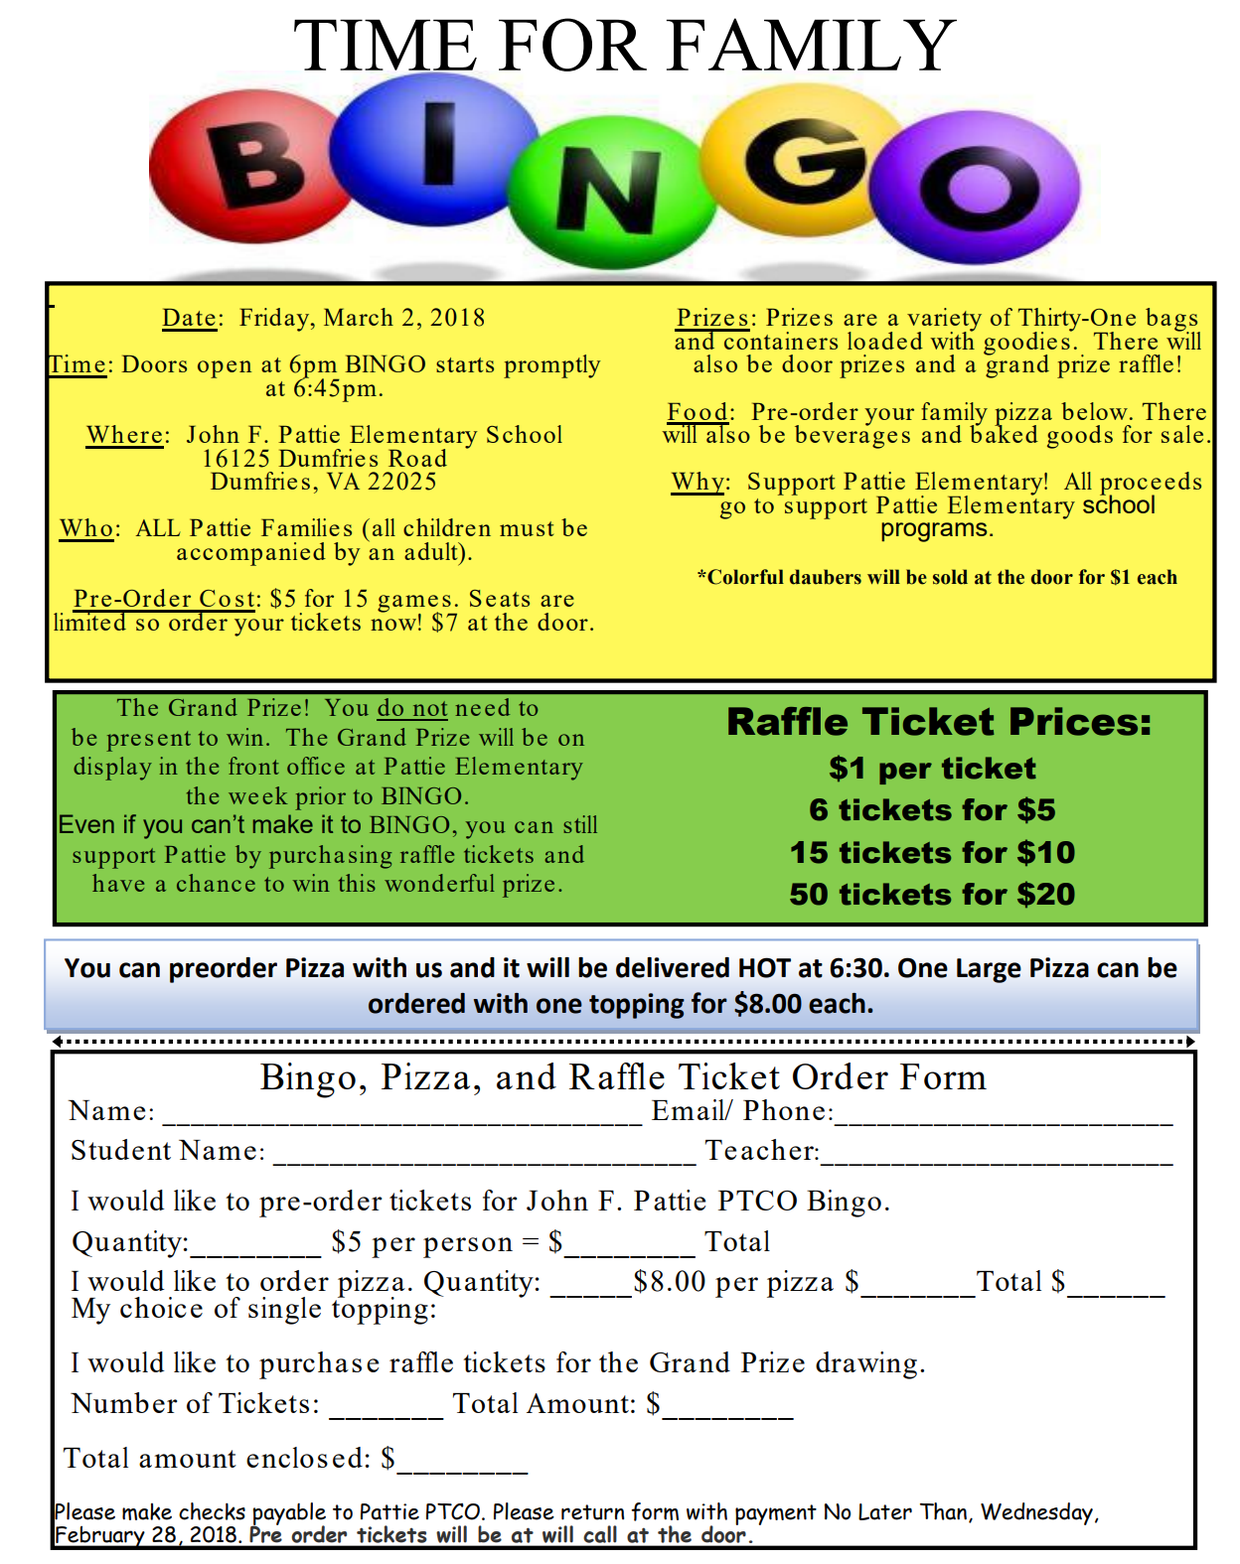 all the information you need can be found in the flyer below a variety of prizes are offered as well as door prizes and a grand prize raffle